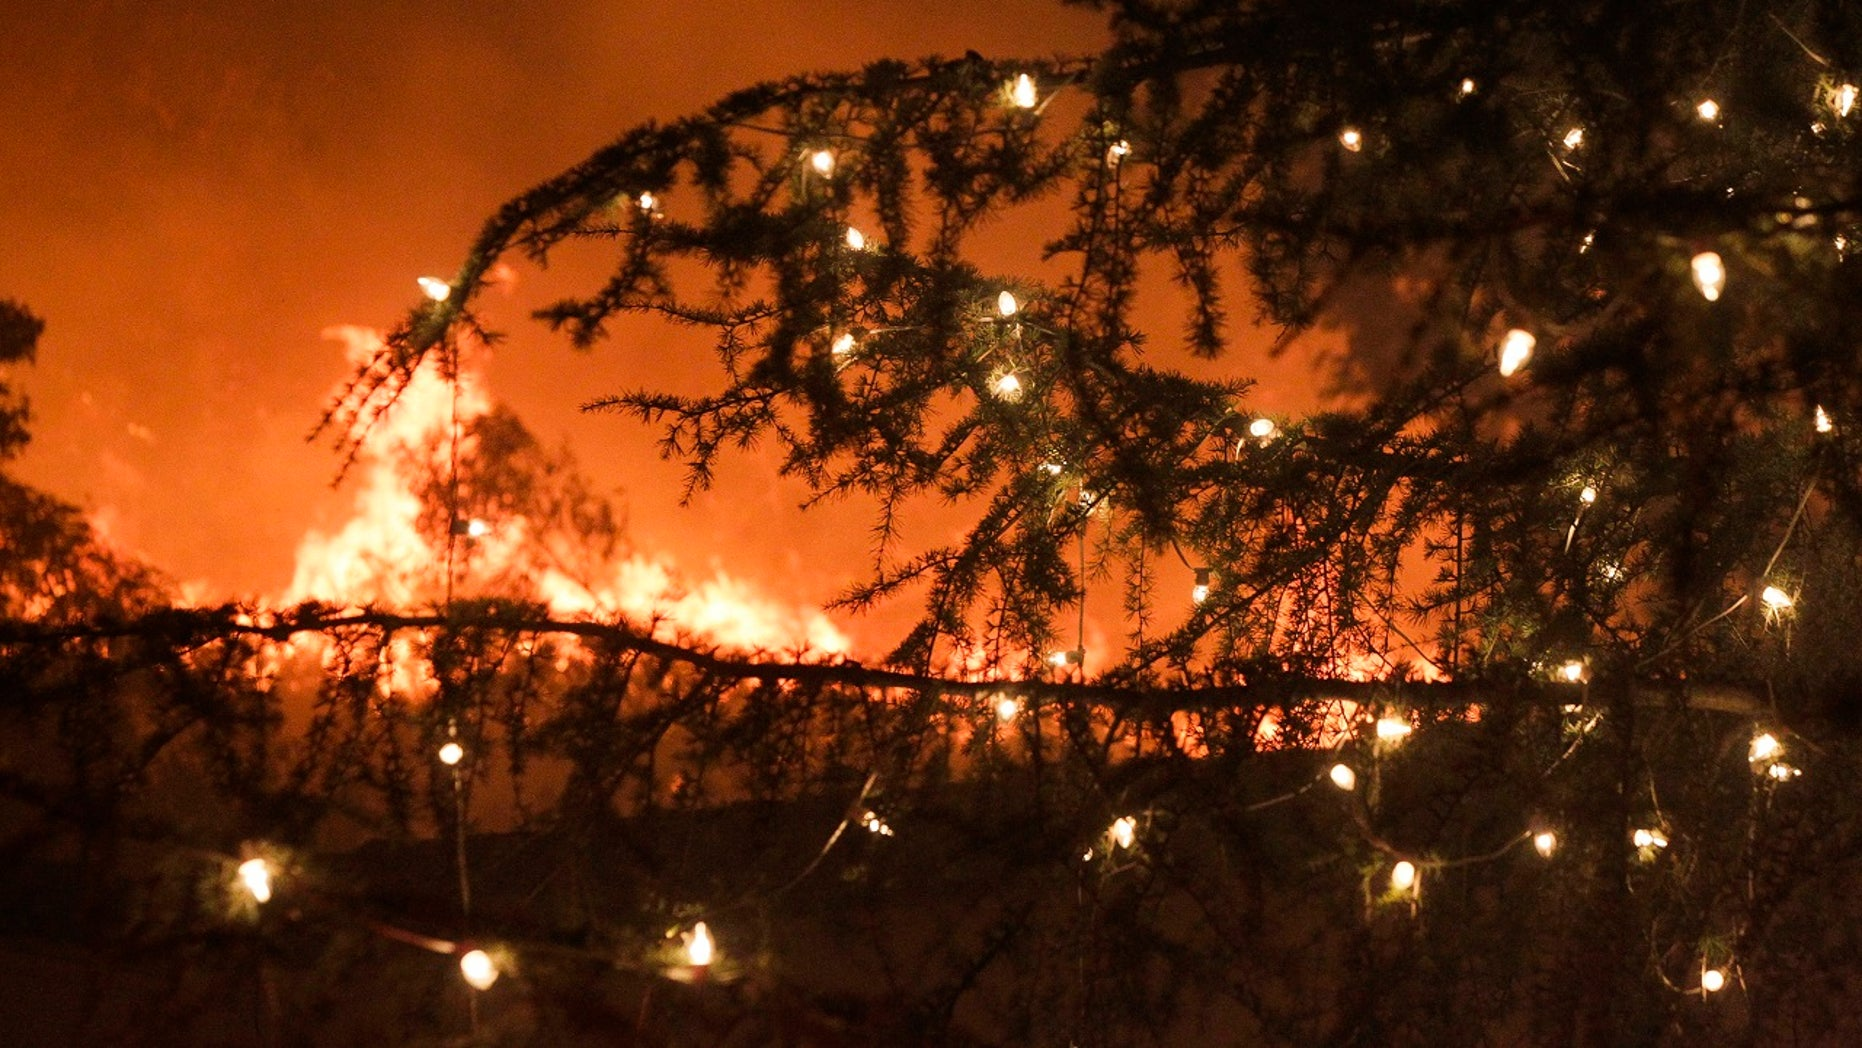 a tennessee familys home caught on fire after leaving christmas lights on all night